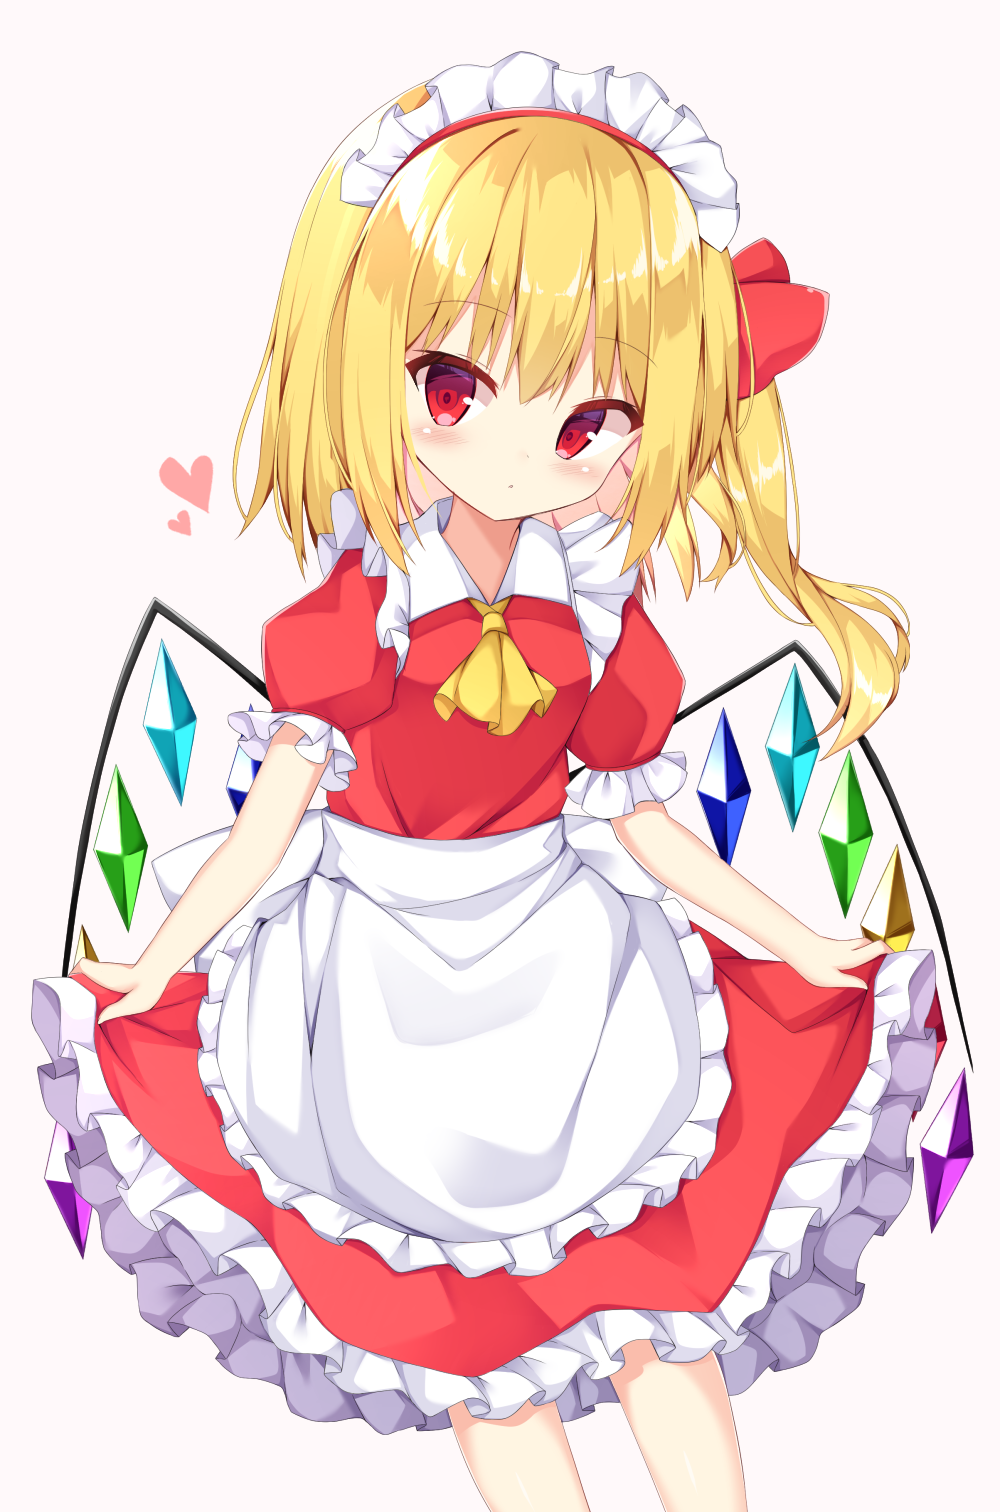 1girl alternate_costume alternate_headwear apron bangs blonde_hair blush commentary contrapposto cravat cropped_legs enmaided expressionless eyebrows_visible_through_hair feet_out_of_frame flandre_scarlet gradient gradient_background hair_ribbon head_tilt heart highres kuraaken lifted_by_self looking_at_viewer maid maid_headdress one_side_up petticoat pink_background puffy_short_sleeves puffy_sleeves red_eyes red_shirt red_skirt ribbon shiny shiny_hair shirt short_hair short_sleeves skirt skirt_lift skirt_set solo touhou waist_apron white_background wings yellow_neckwear